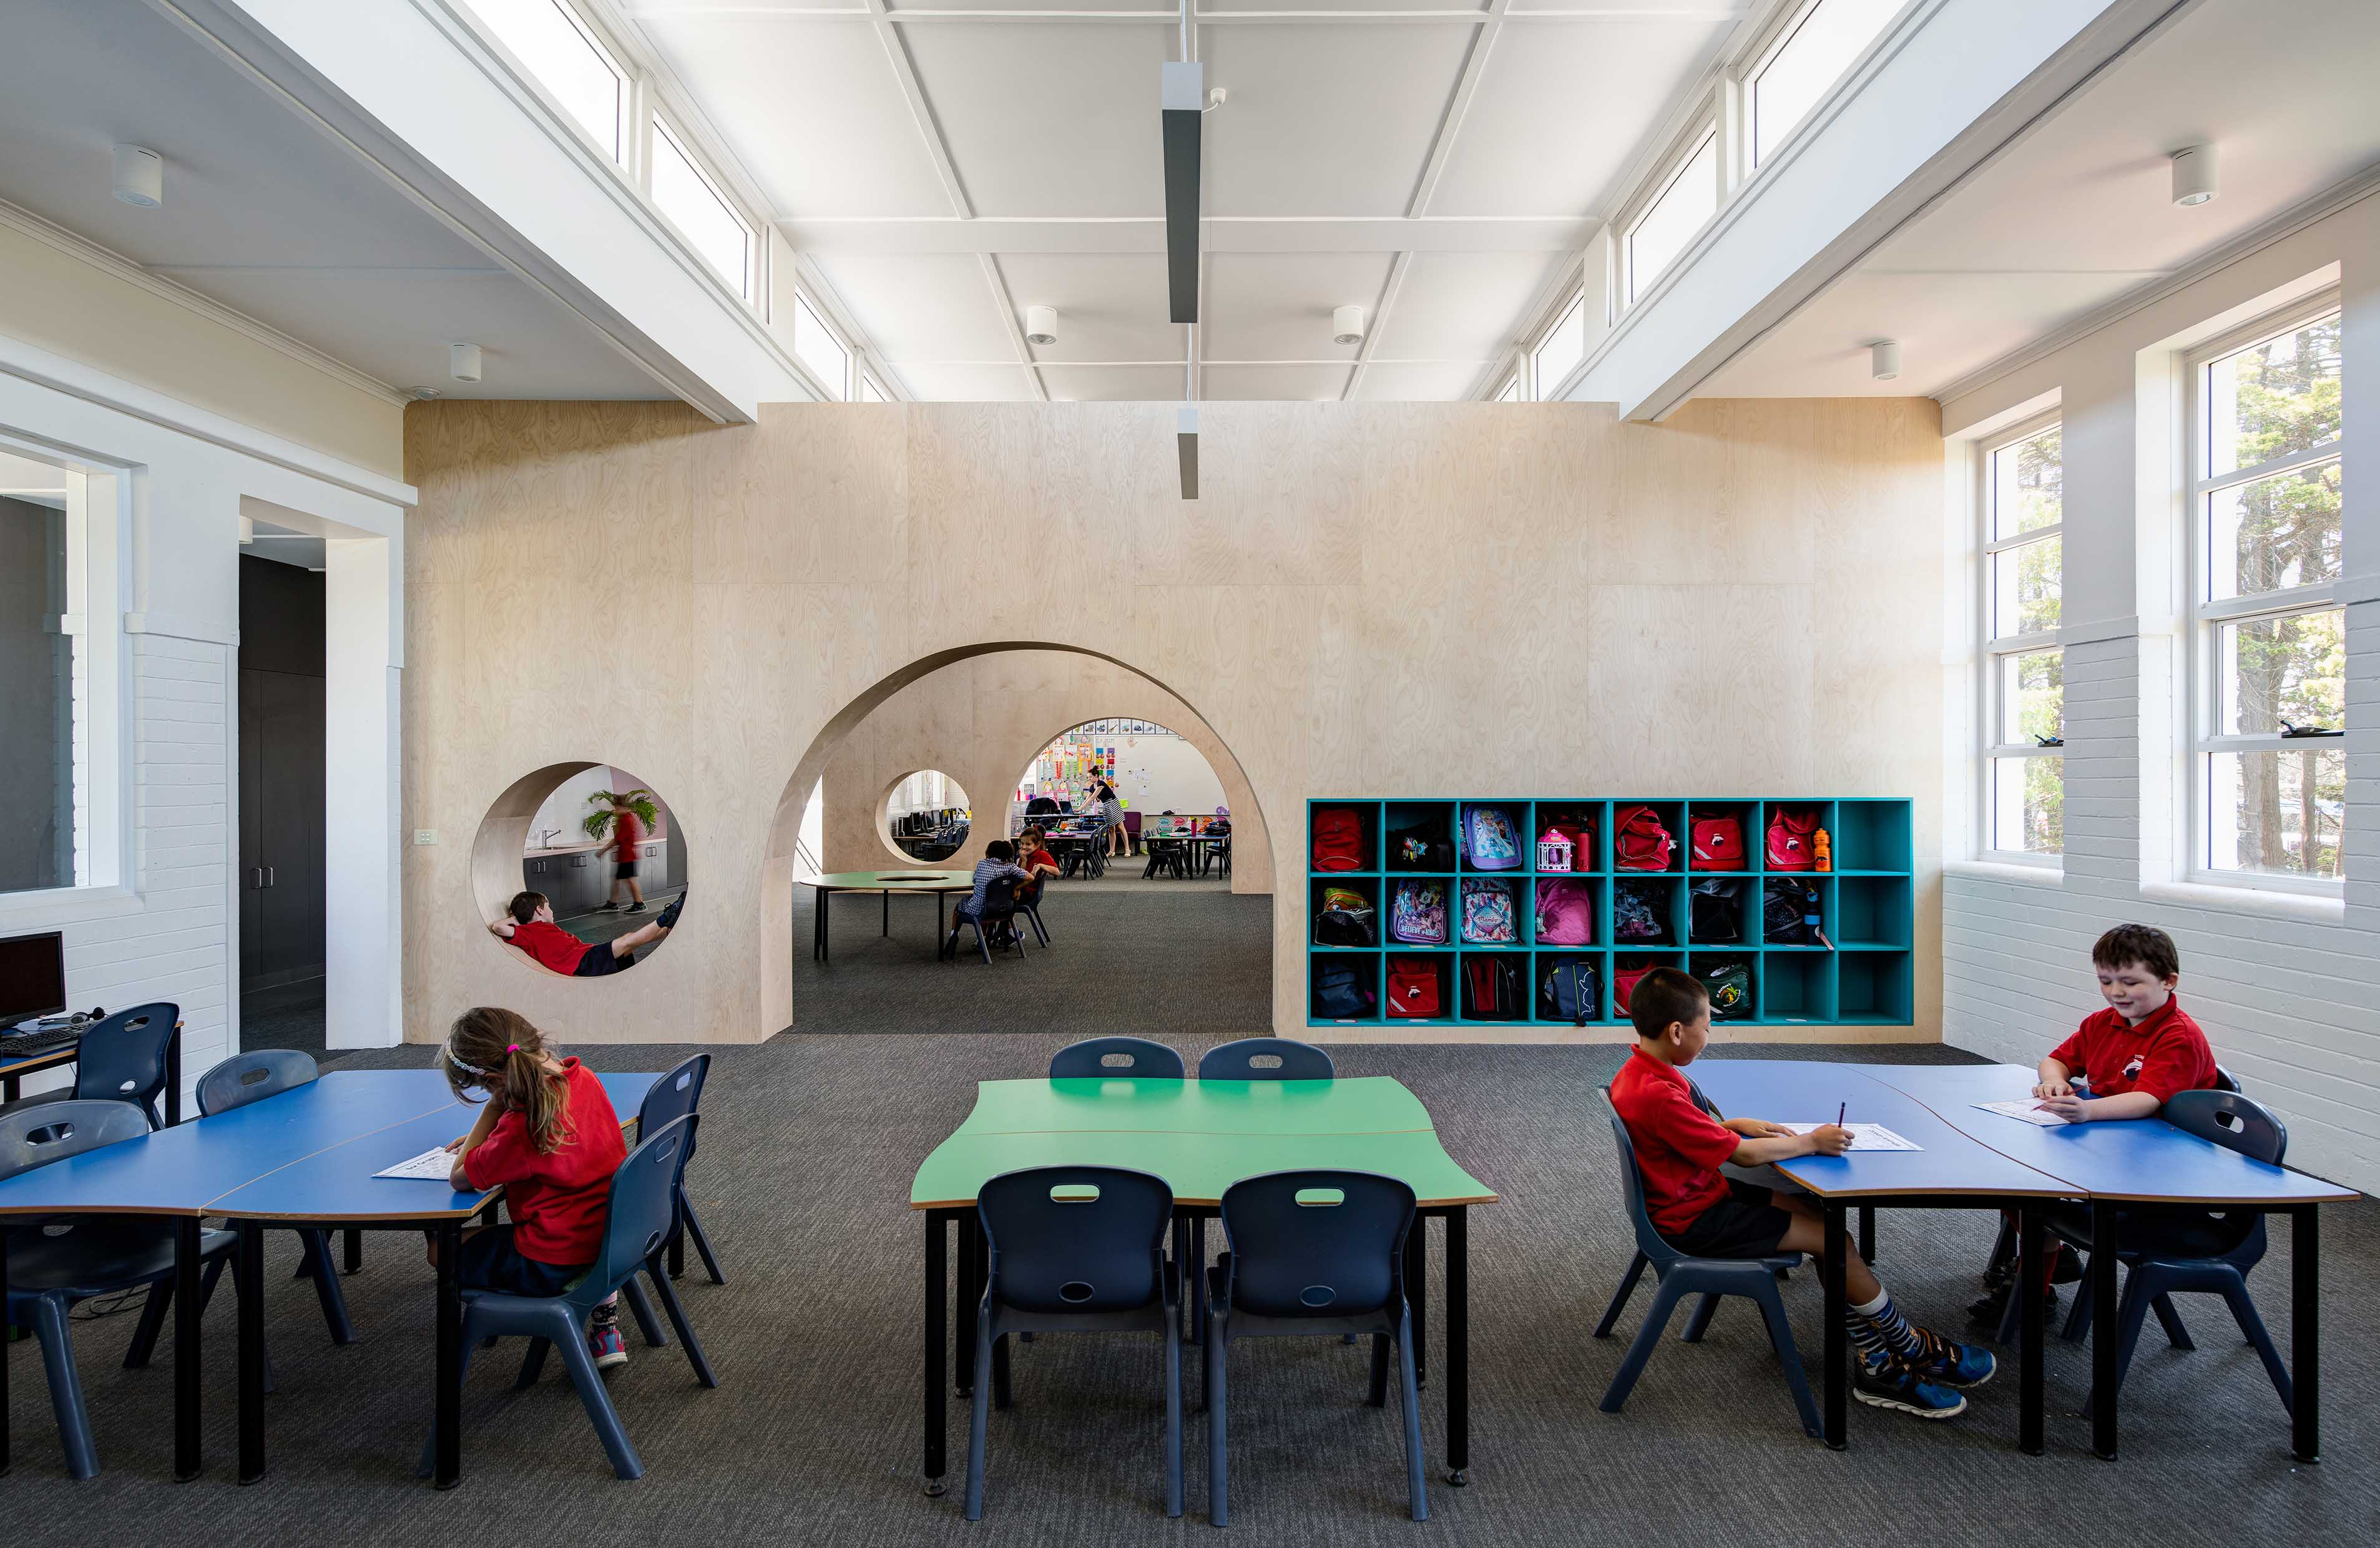 Frankston Primary School Early Learning Centre by Chaulk Studio | Photo by Jamie Diaz-Berrio